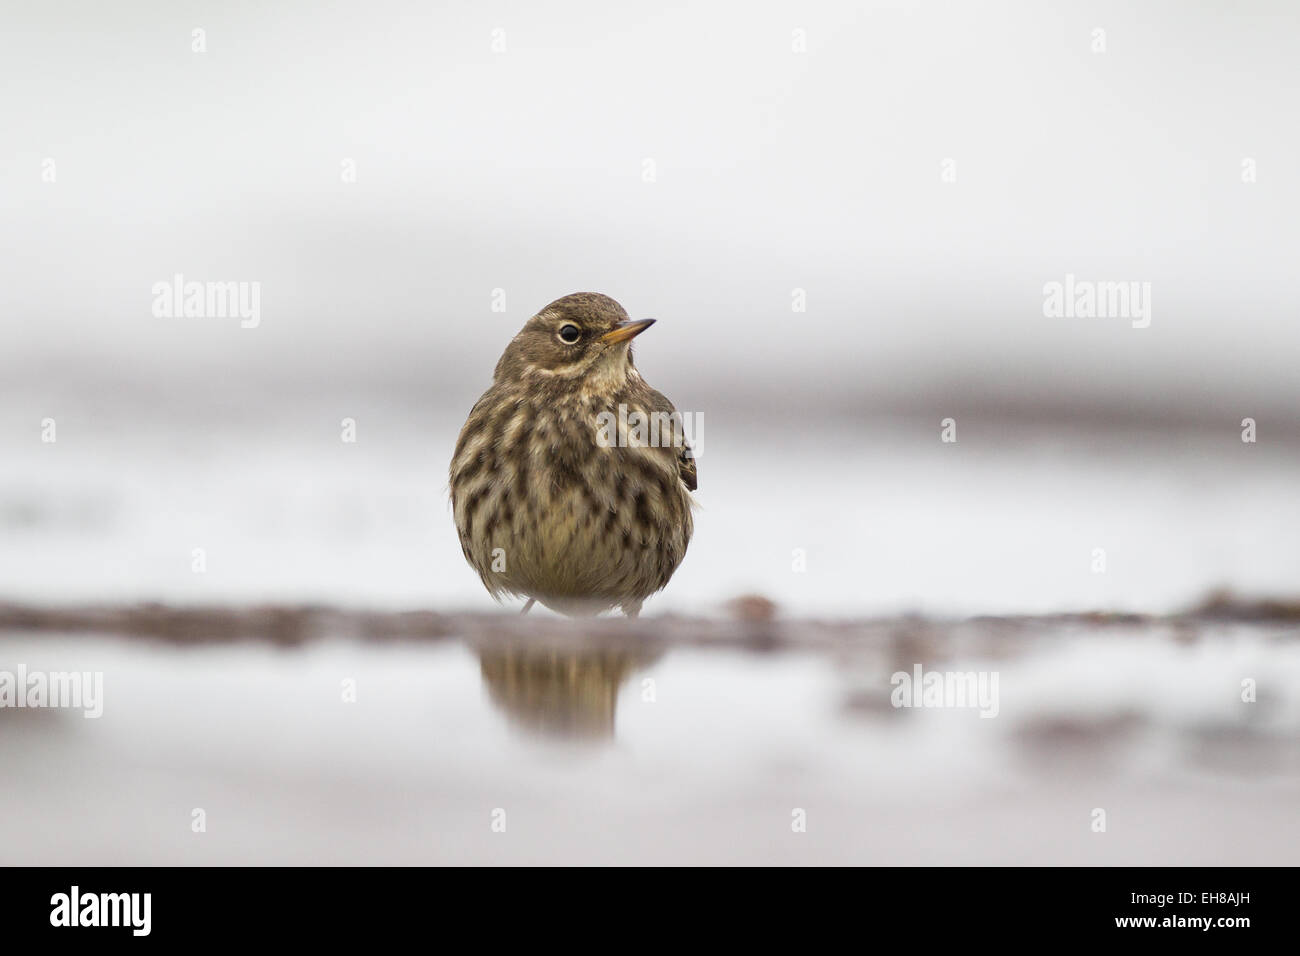 The Eurasian rock pipit (Anthus petrosus) a small passerine bird, which breeds on rocky coasts. - Stock Image